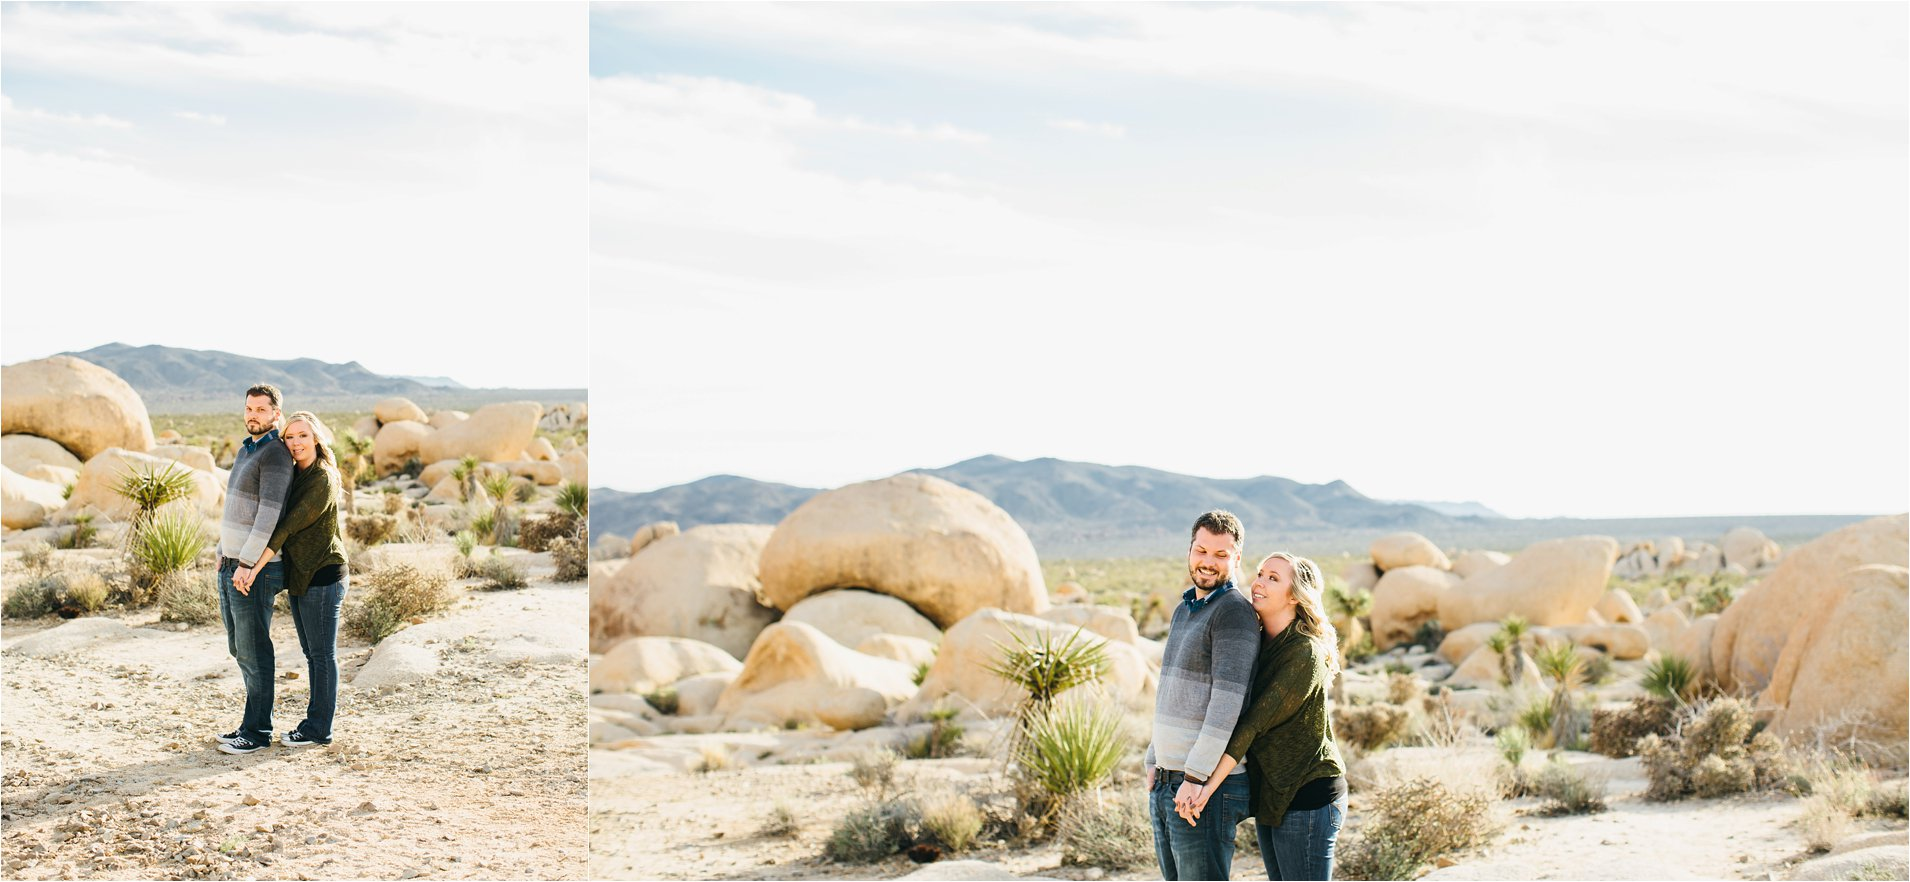 Engagement Photos in the Desert